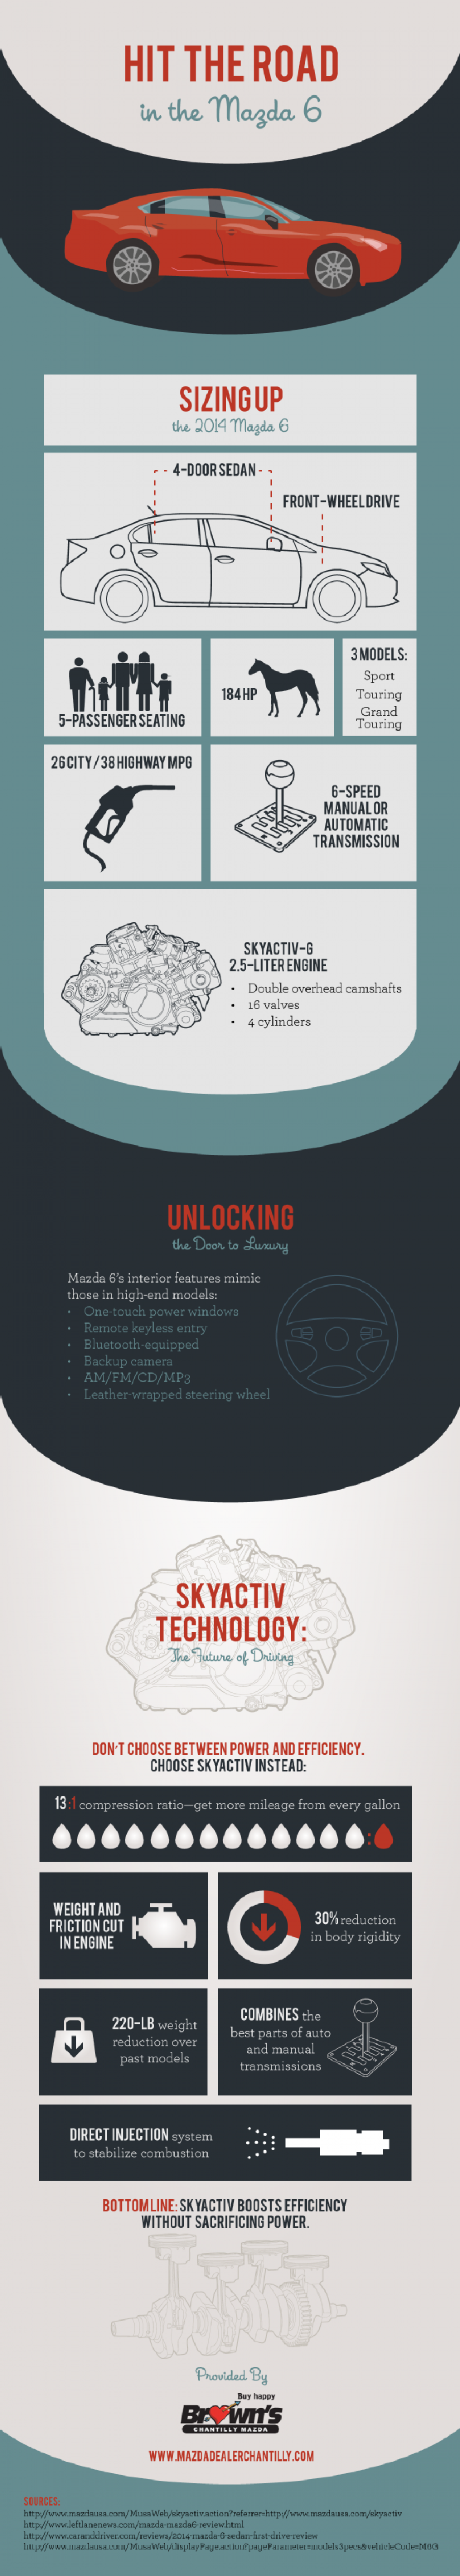 Hit the Road in the Mazda6 Infographic